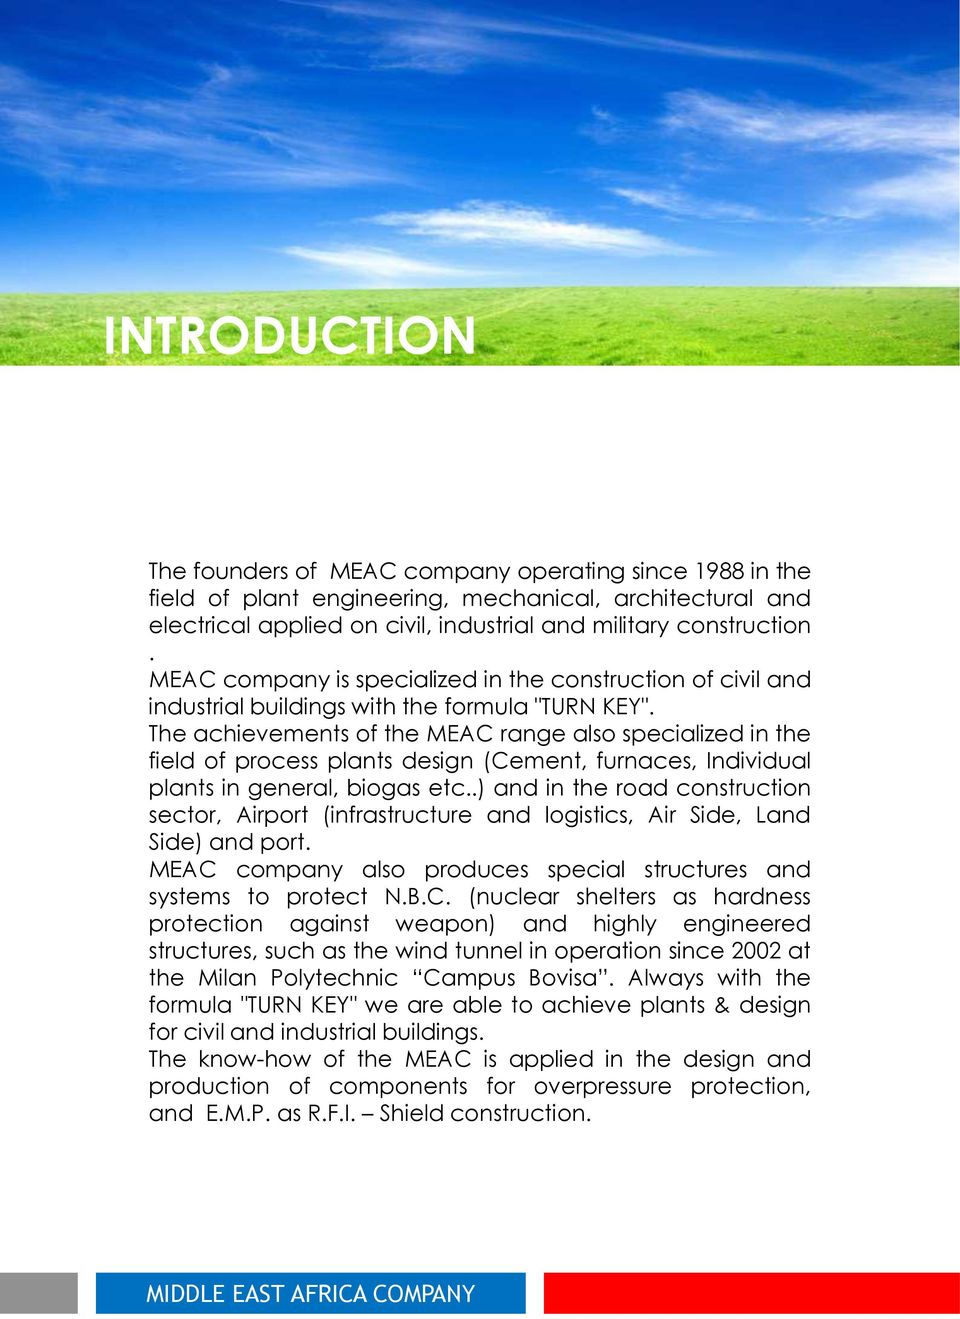 The achievements of the MEAC range also specialized in the field of process plants design (Cement, furnaces, Individual plants in general, biogas etc.